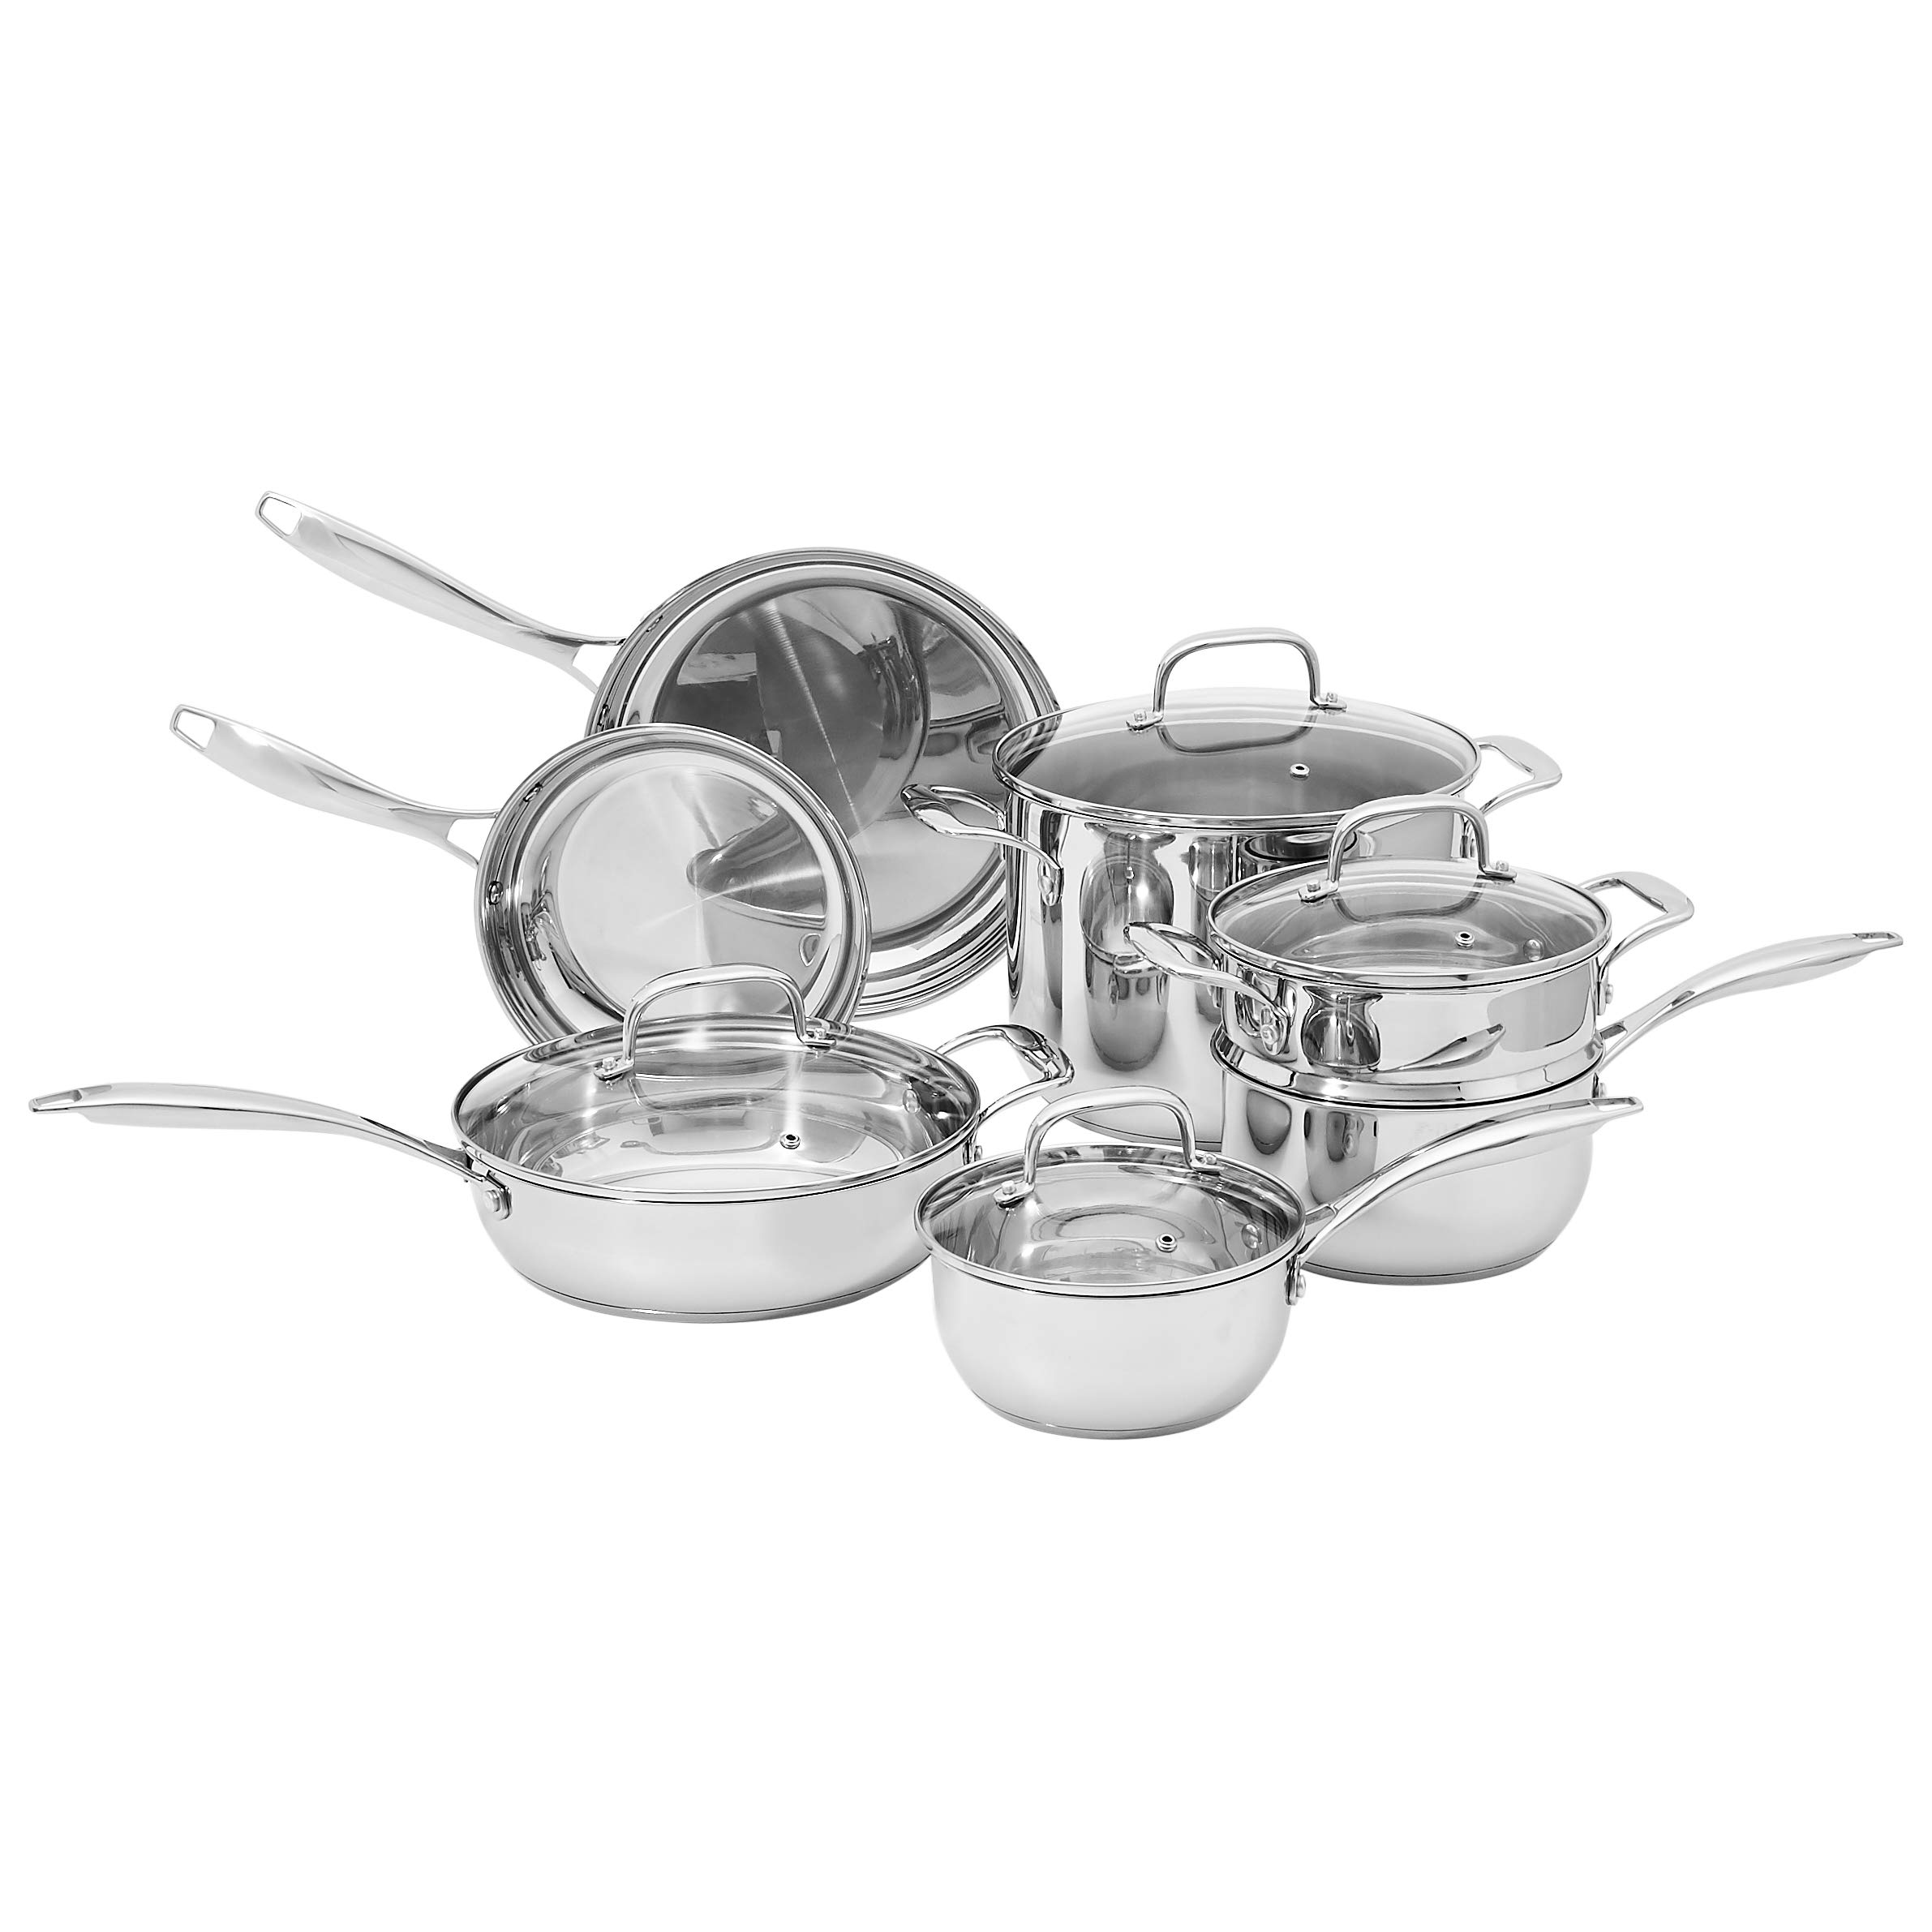 Amazon Basics CW1904222 Cookware Set, 11-Piece, Silver